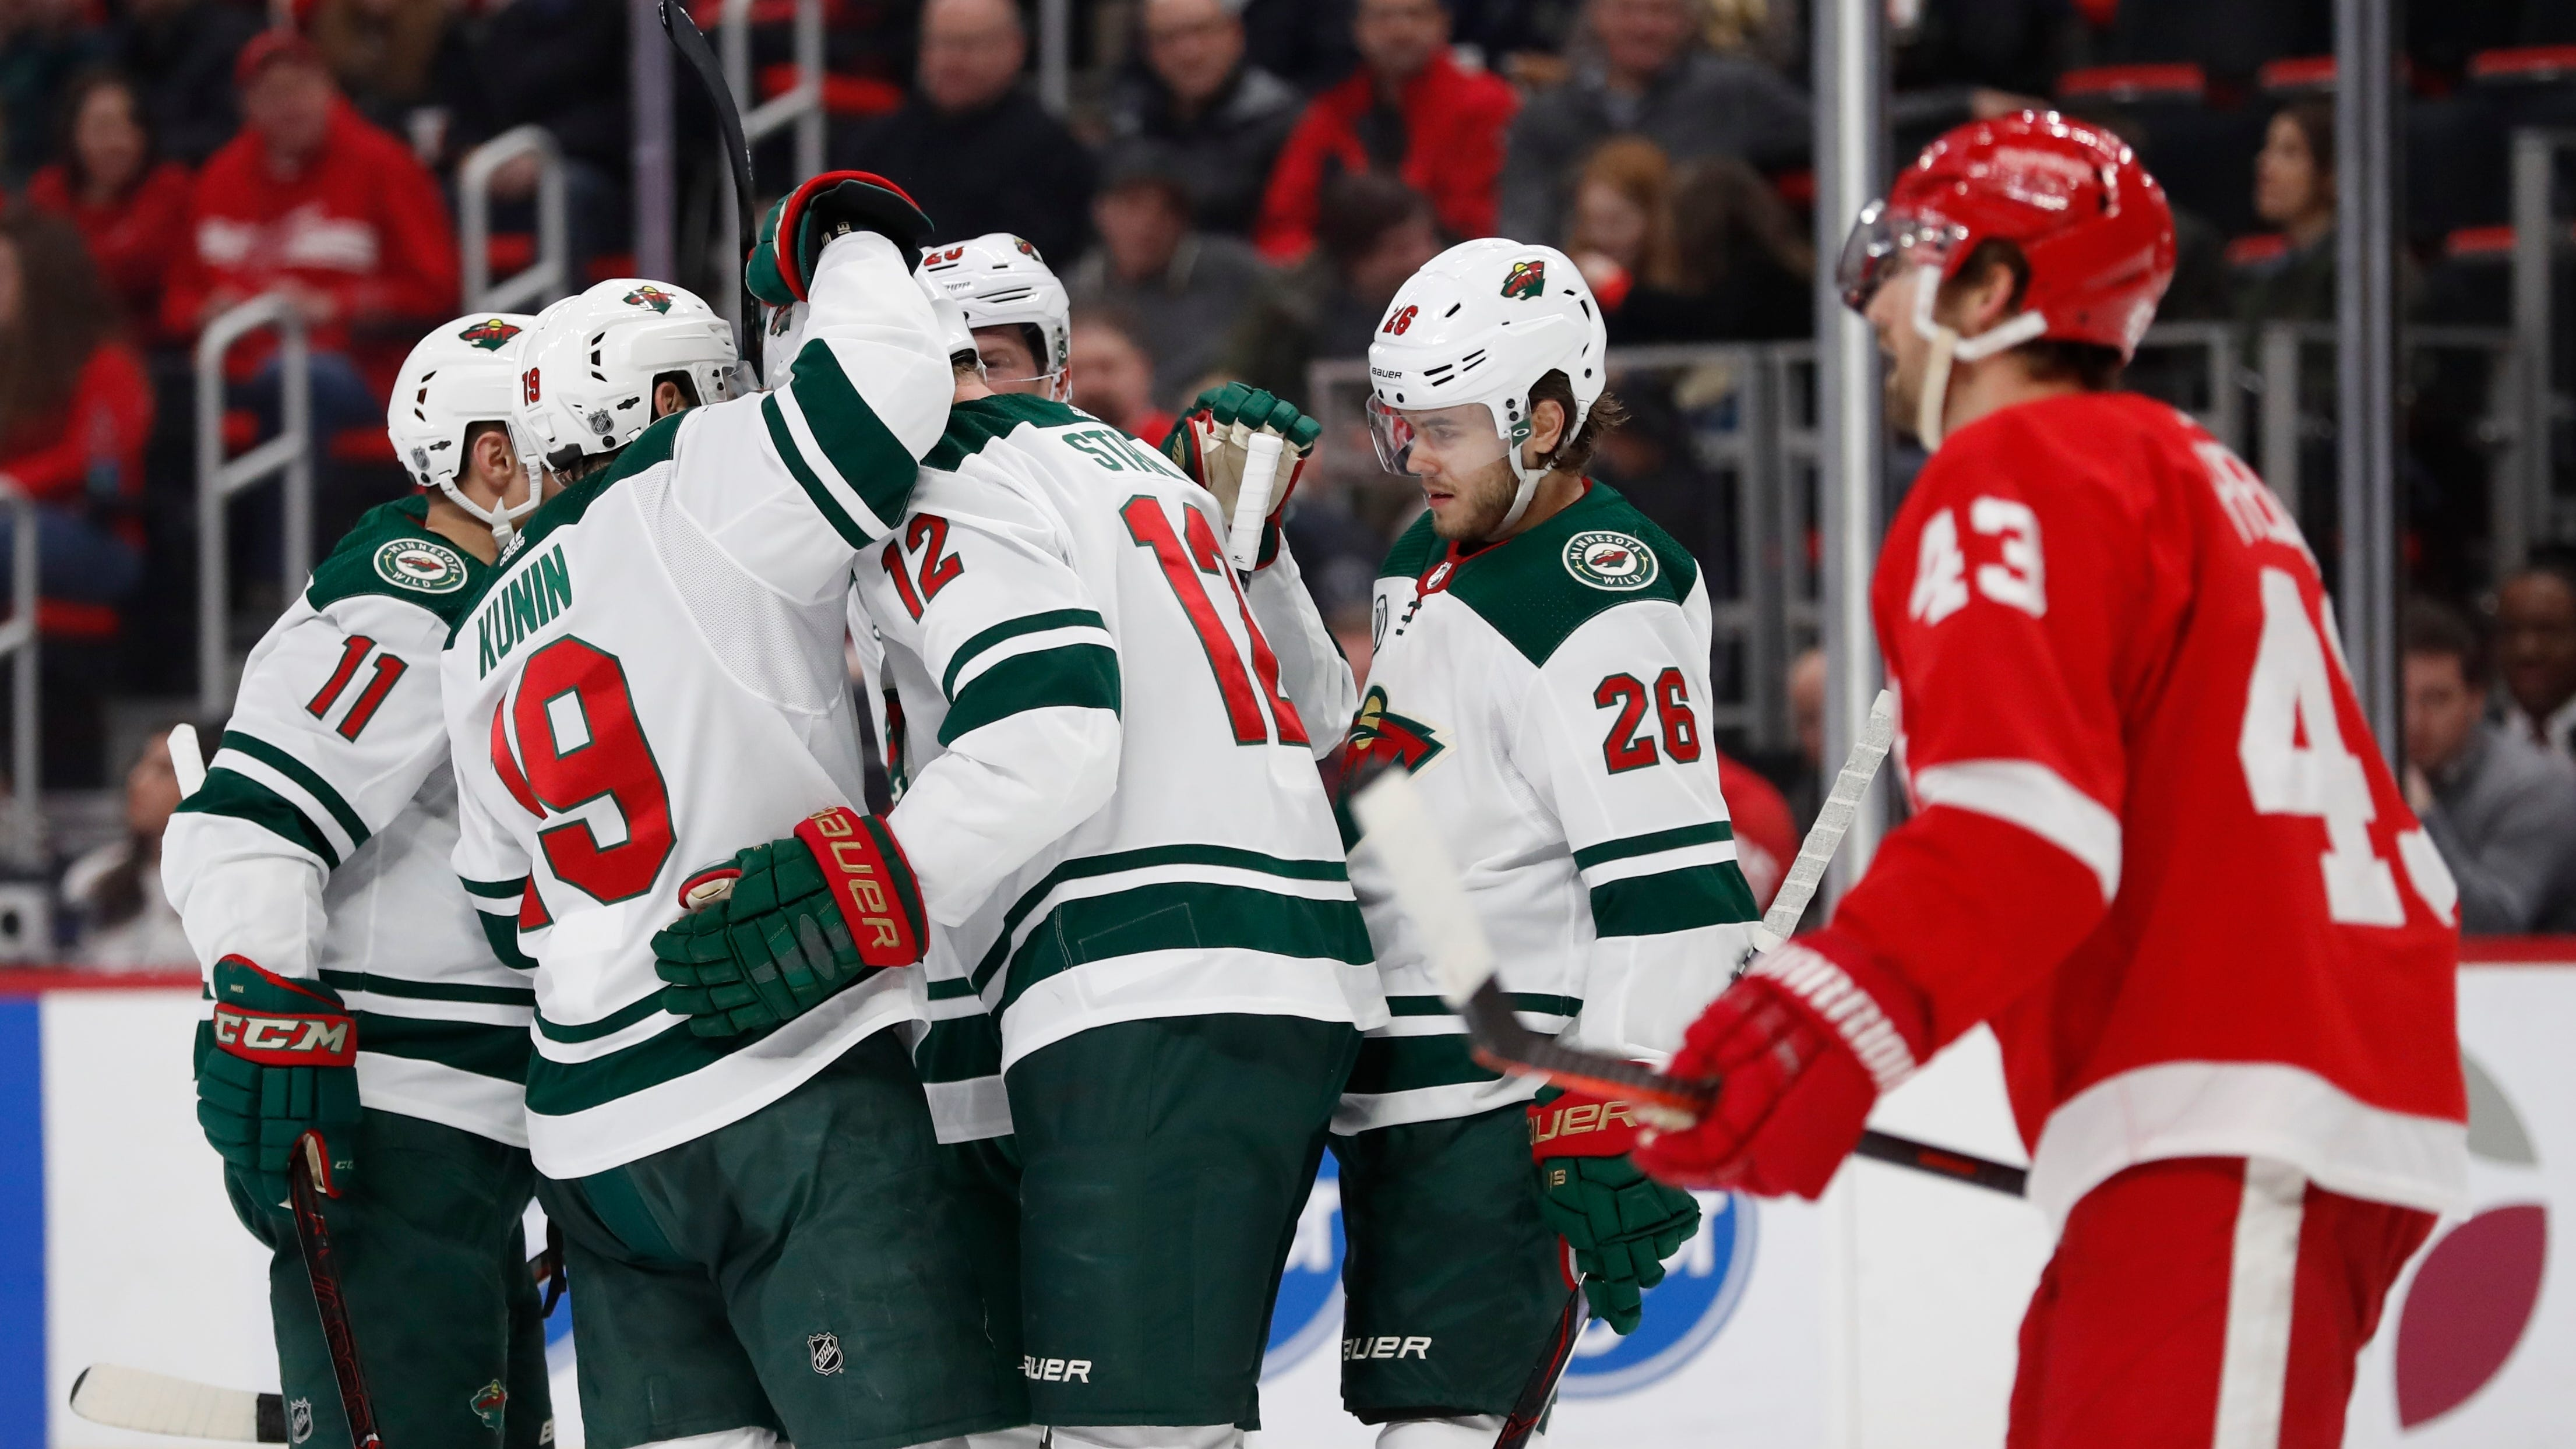 Minnesota Wild center Eric Staal (12) is congratulated by teammates as Detroit Red Wings left wing Darren Helm (43) skates by during the second period.